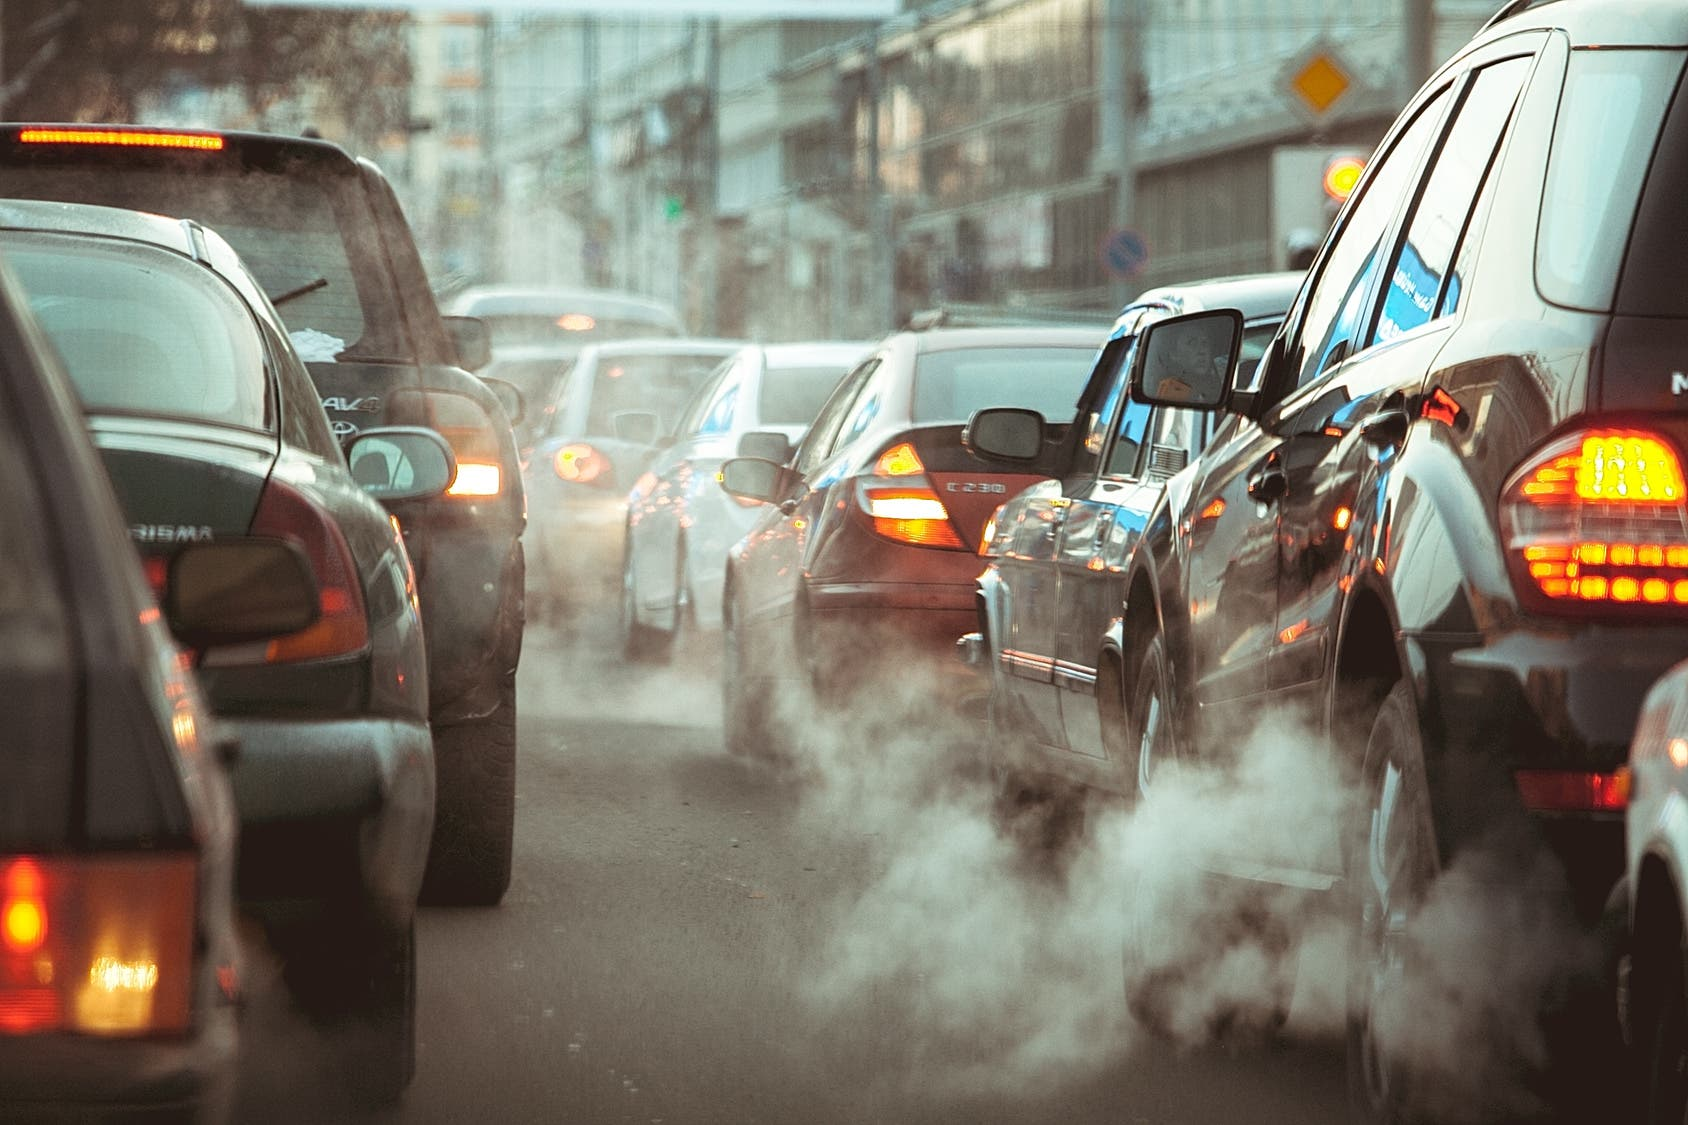 Campaigners want Ads for Polluting SUVs to be Banned